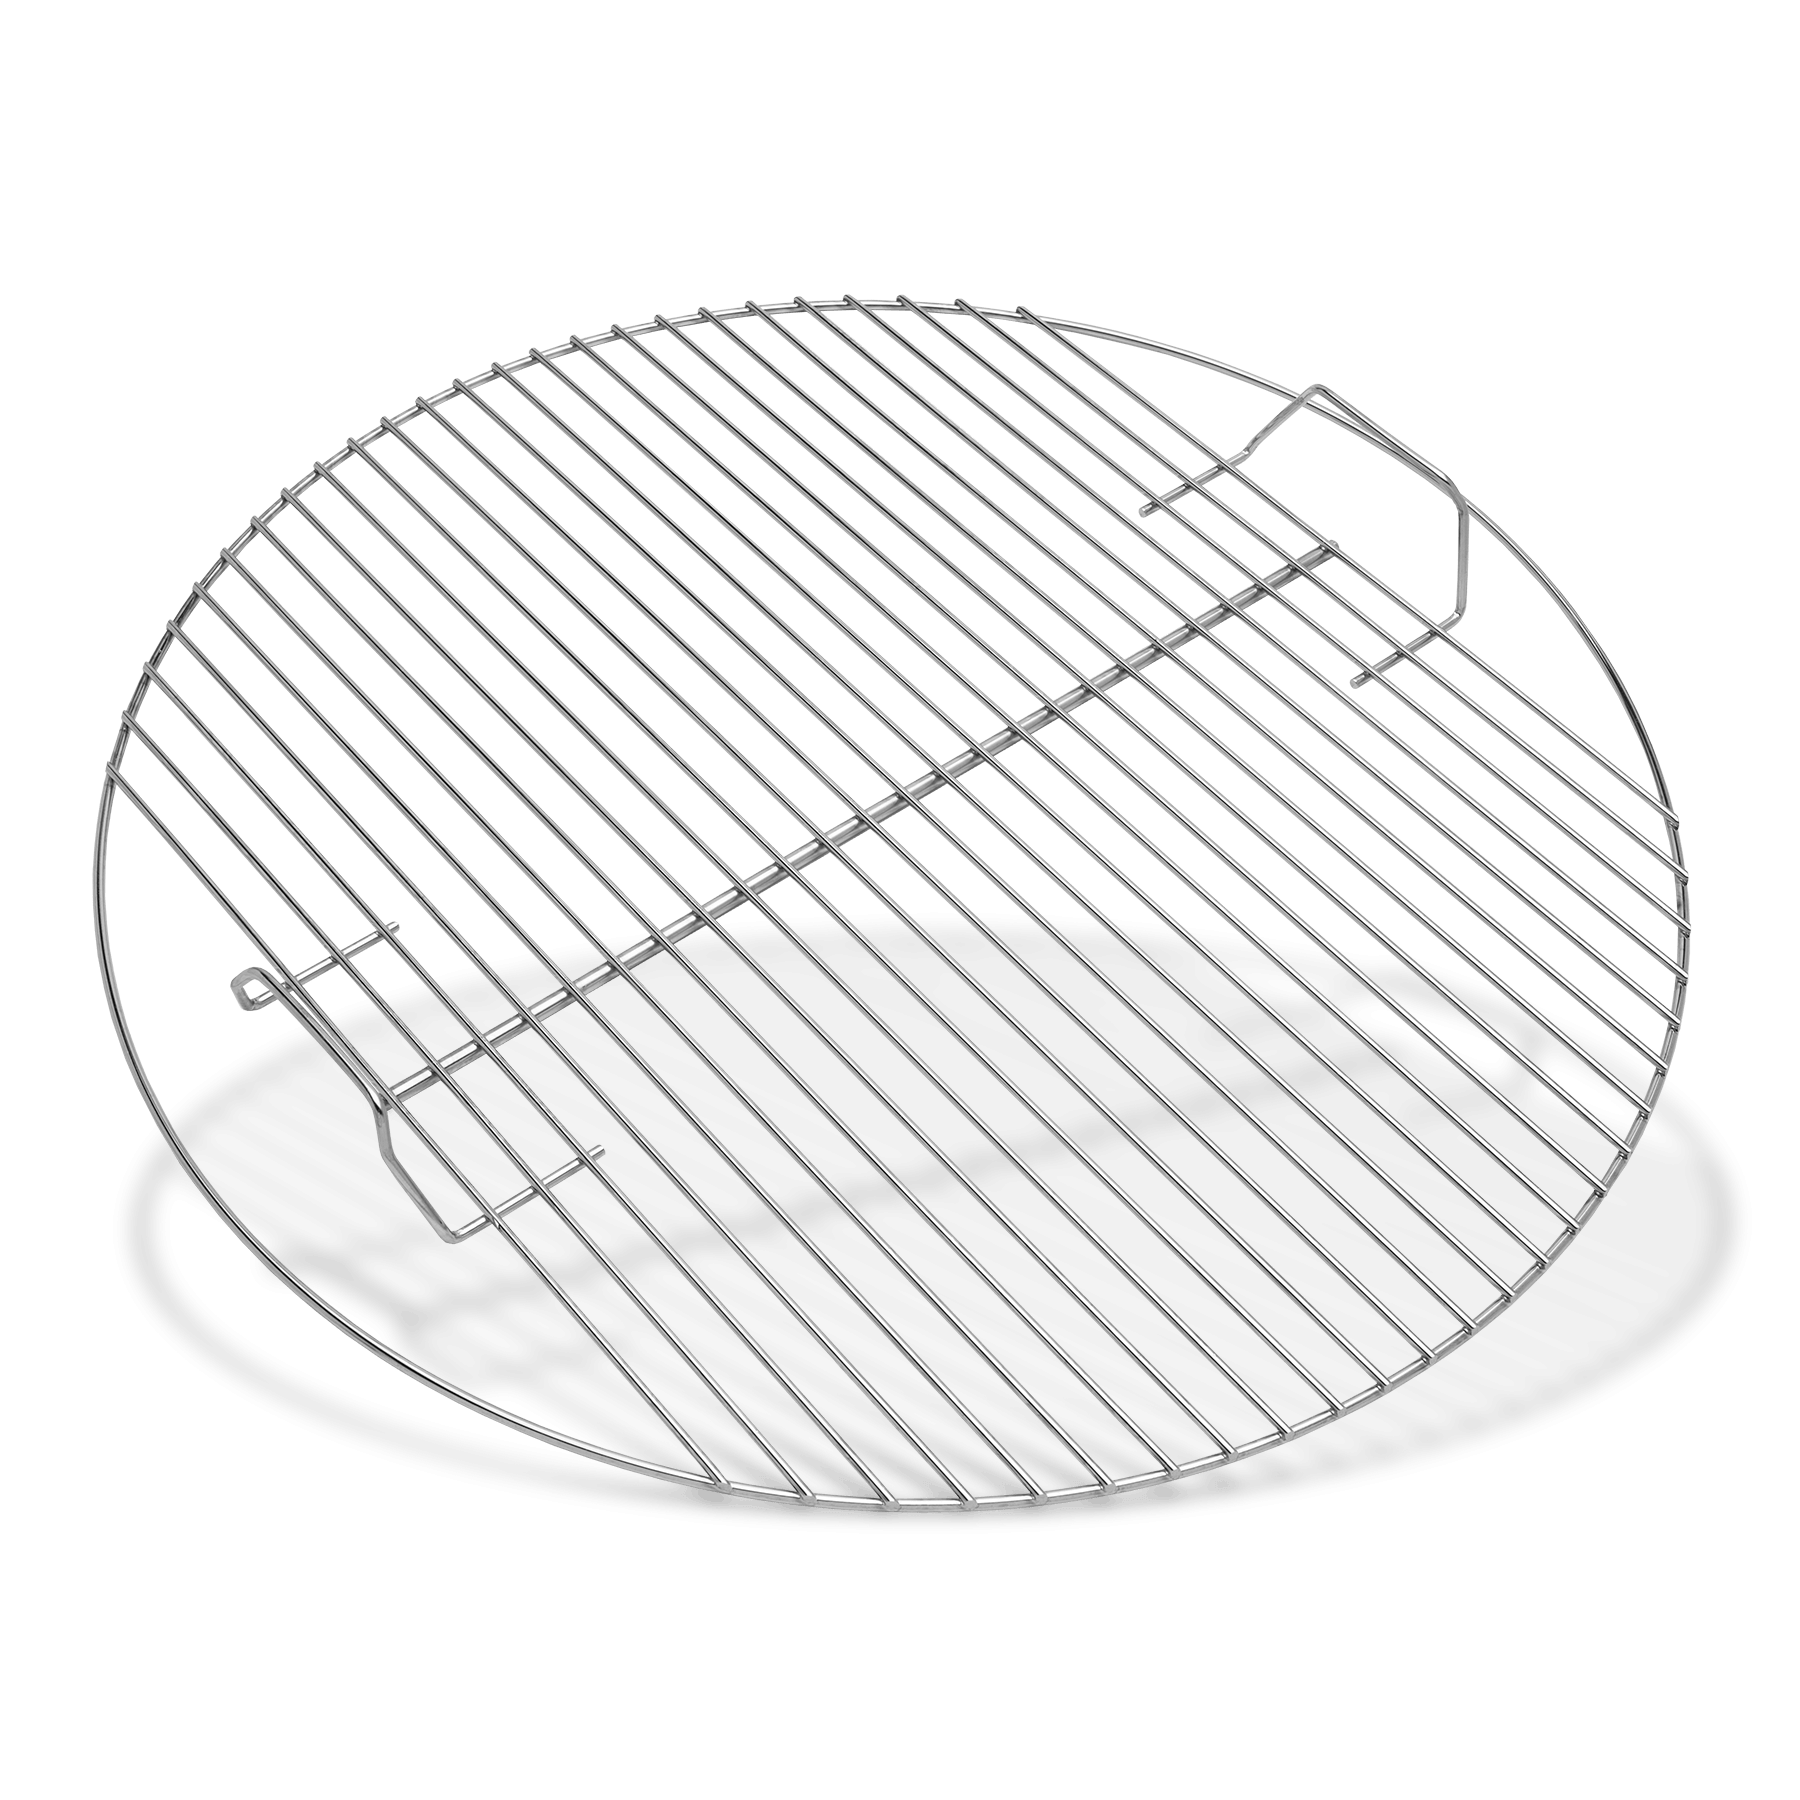 Transparent grill circle. Cooking grate us fits